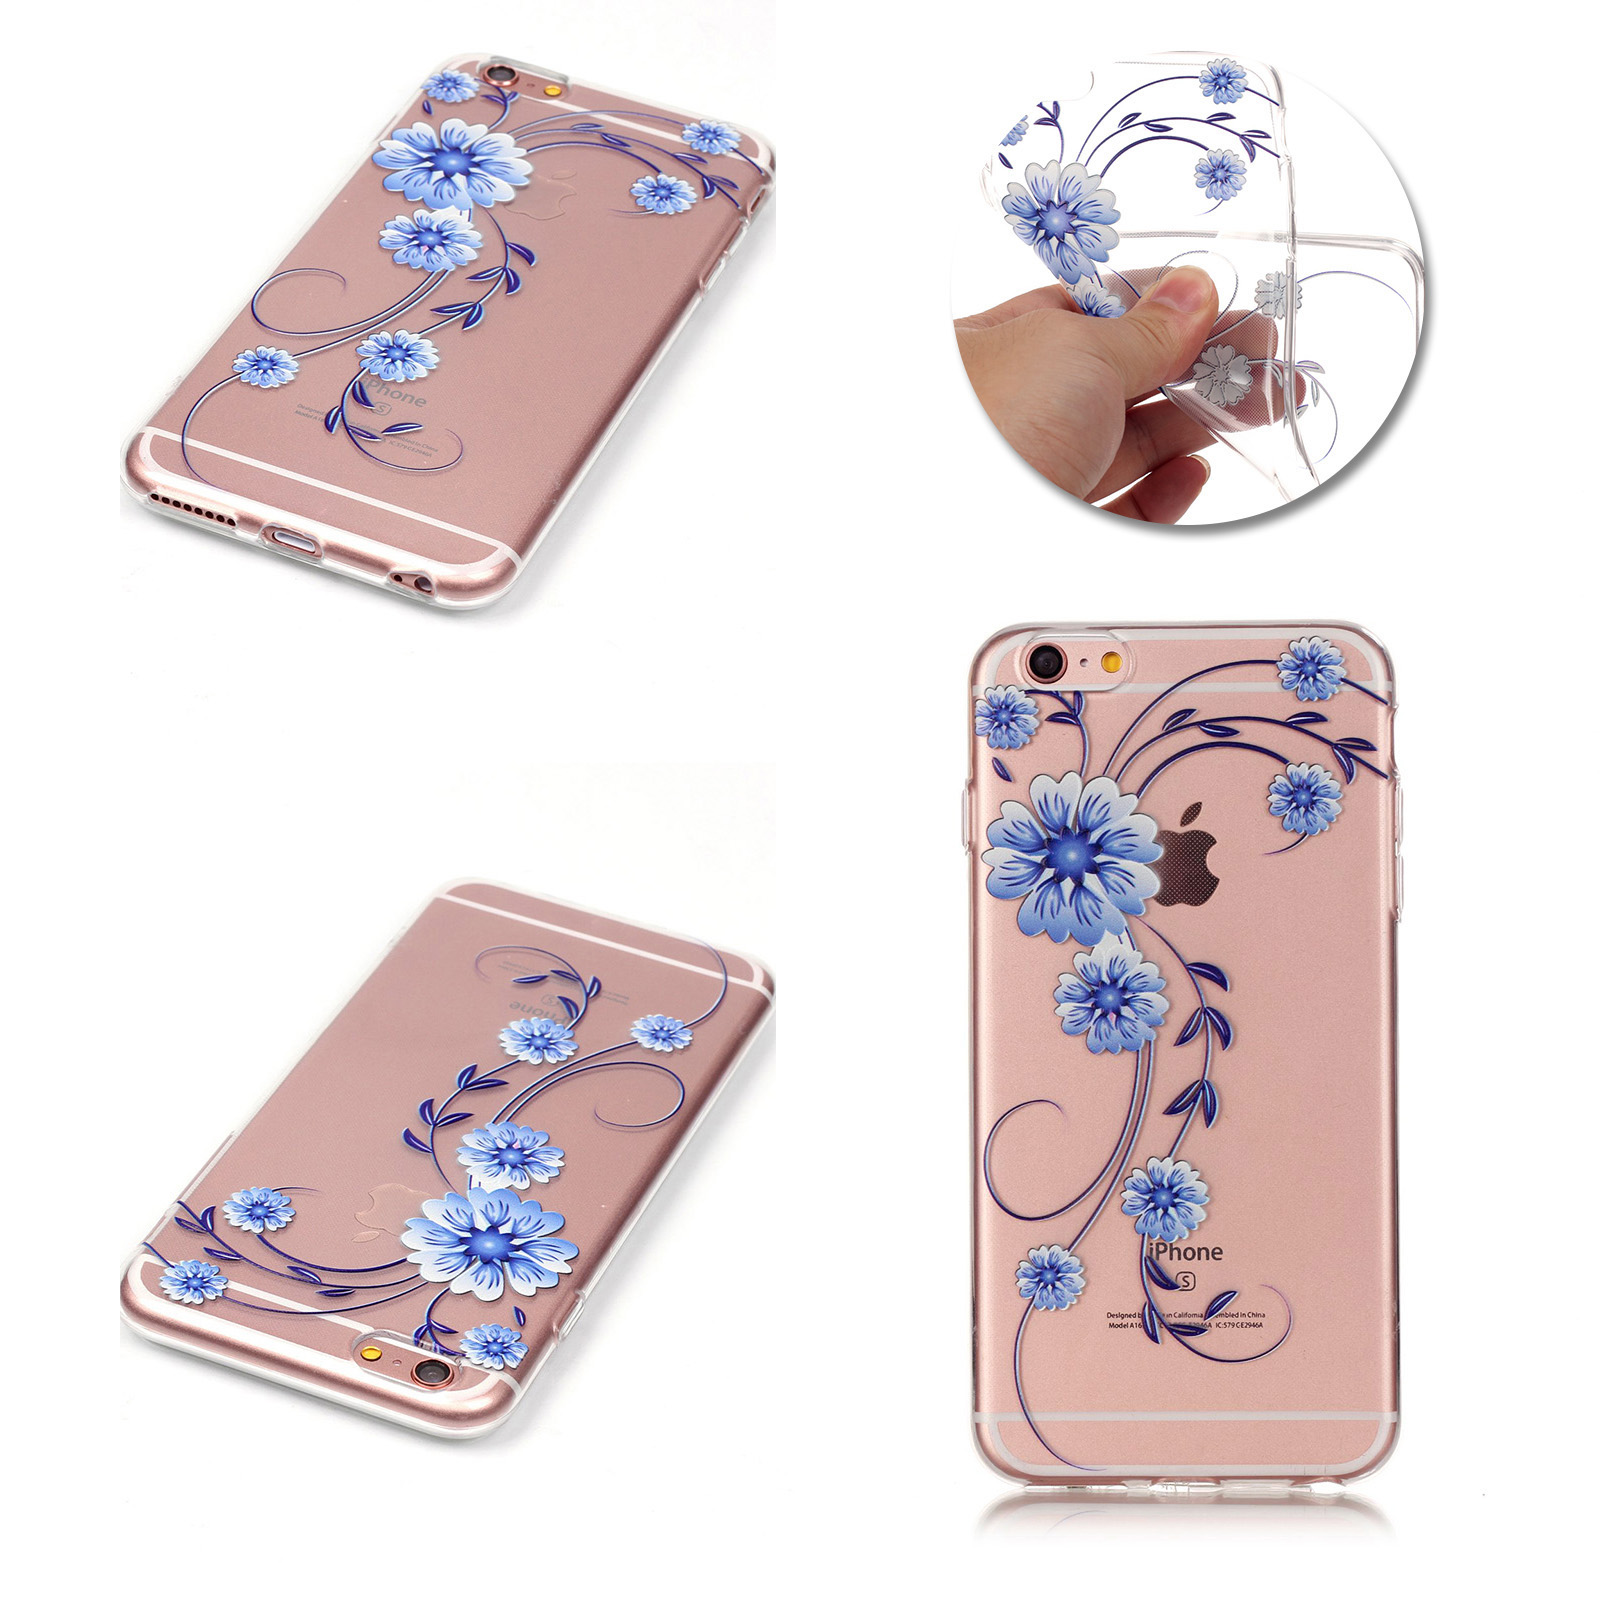 online store 0edbd 8b872 Bling Crystal Clear Transparent Hard Slim Case Cover Skin For iPhone 6 6s  Plus